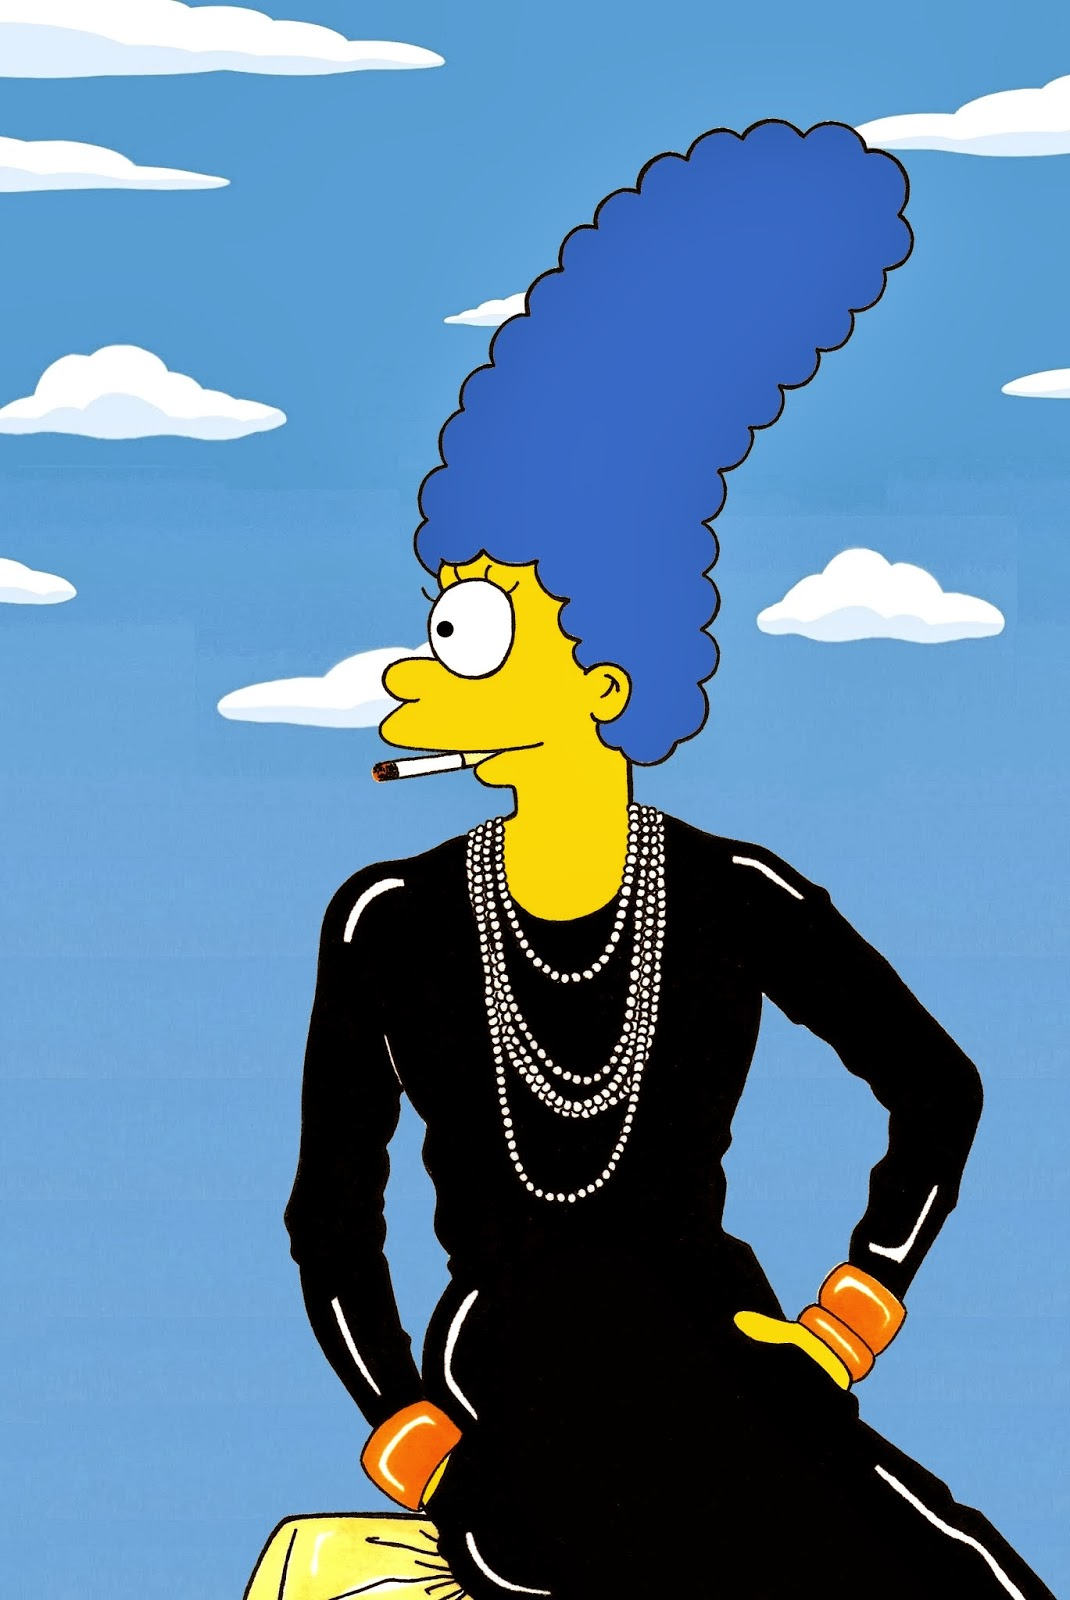 Humor chic art style icon artist alexsandro palombo celebrate marge simpson the most iconic - Marge simpson nud ...